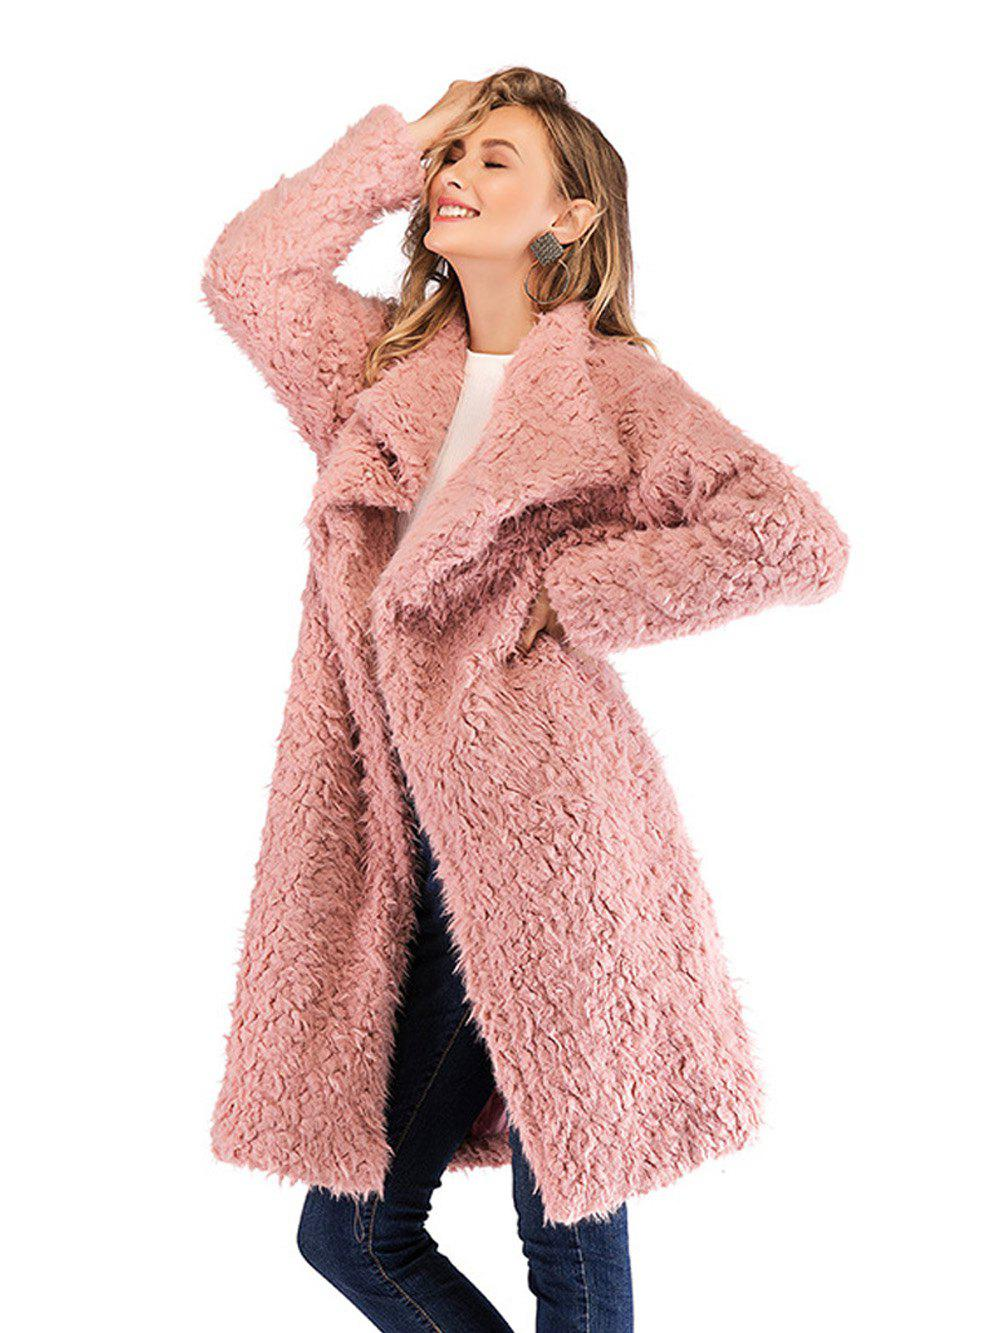 e82a5643c3b Wo Women Elegant Faux Fur Lapel Coat Women Fluffy Warm Long Sleeve Female  Outerwear Chic Winter Coat Jacket Lamb Long Overcoat - L